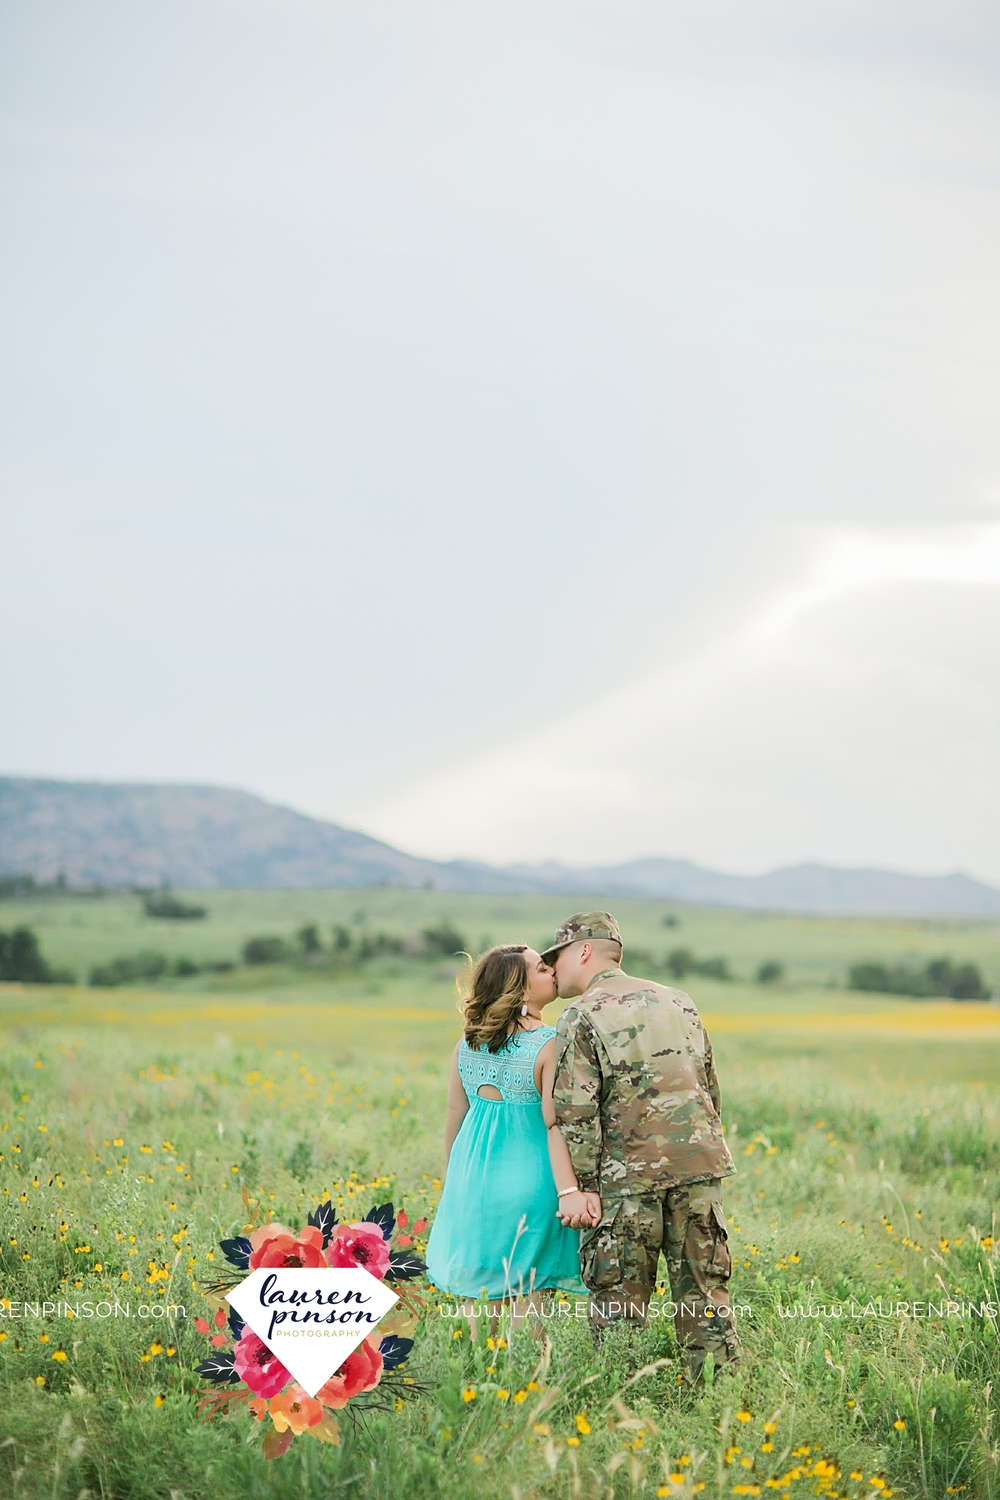 wichita-falls-texas-wedding-photography-engagement-session-army-fort-sill-lawton-oklahoma-wichita-mountains-newlyweds-00010.jpg